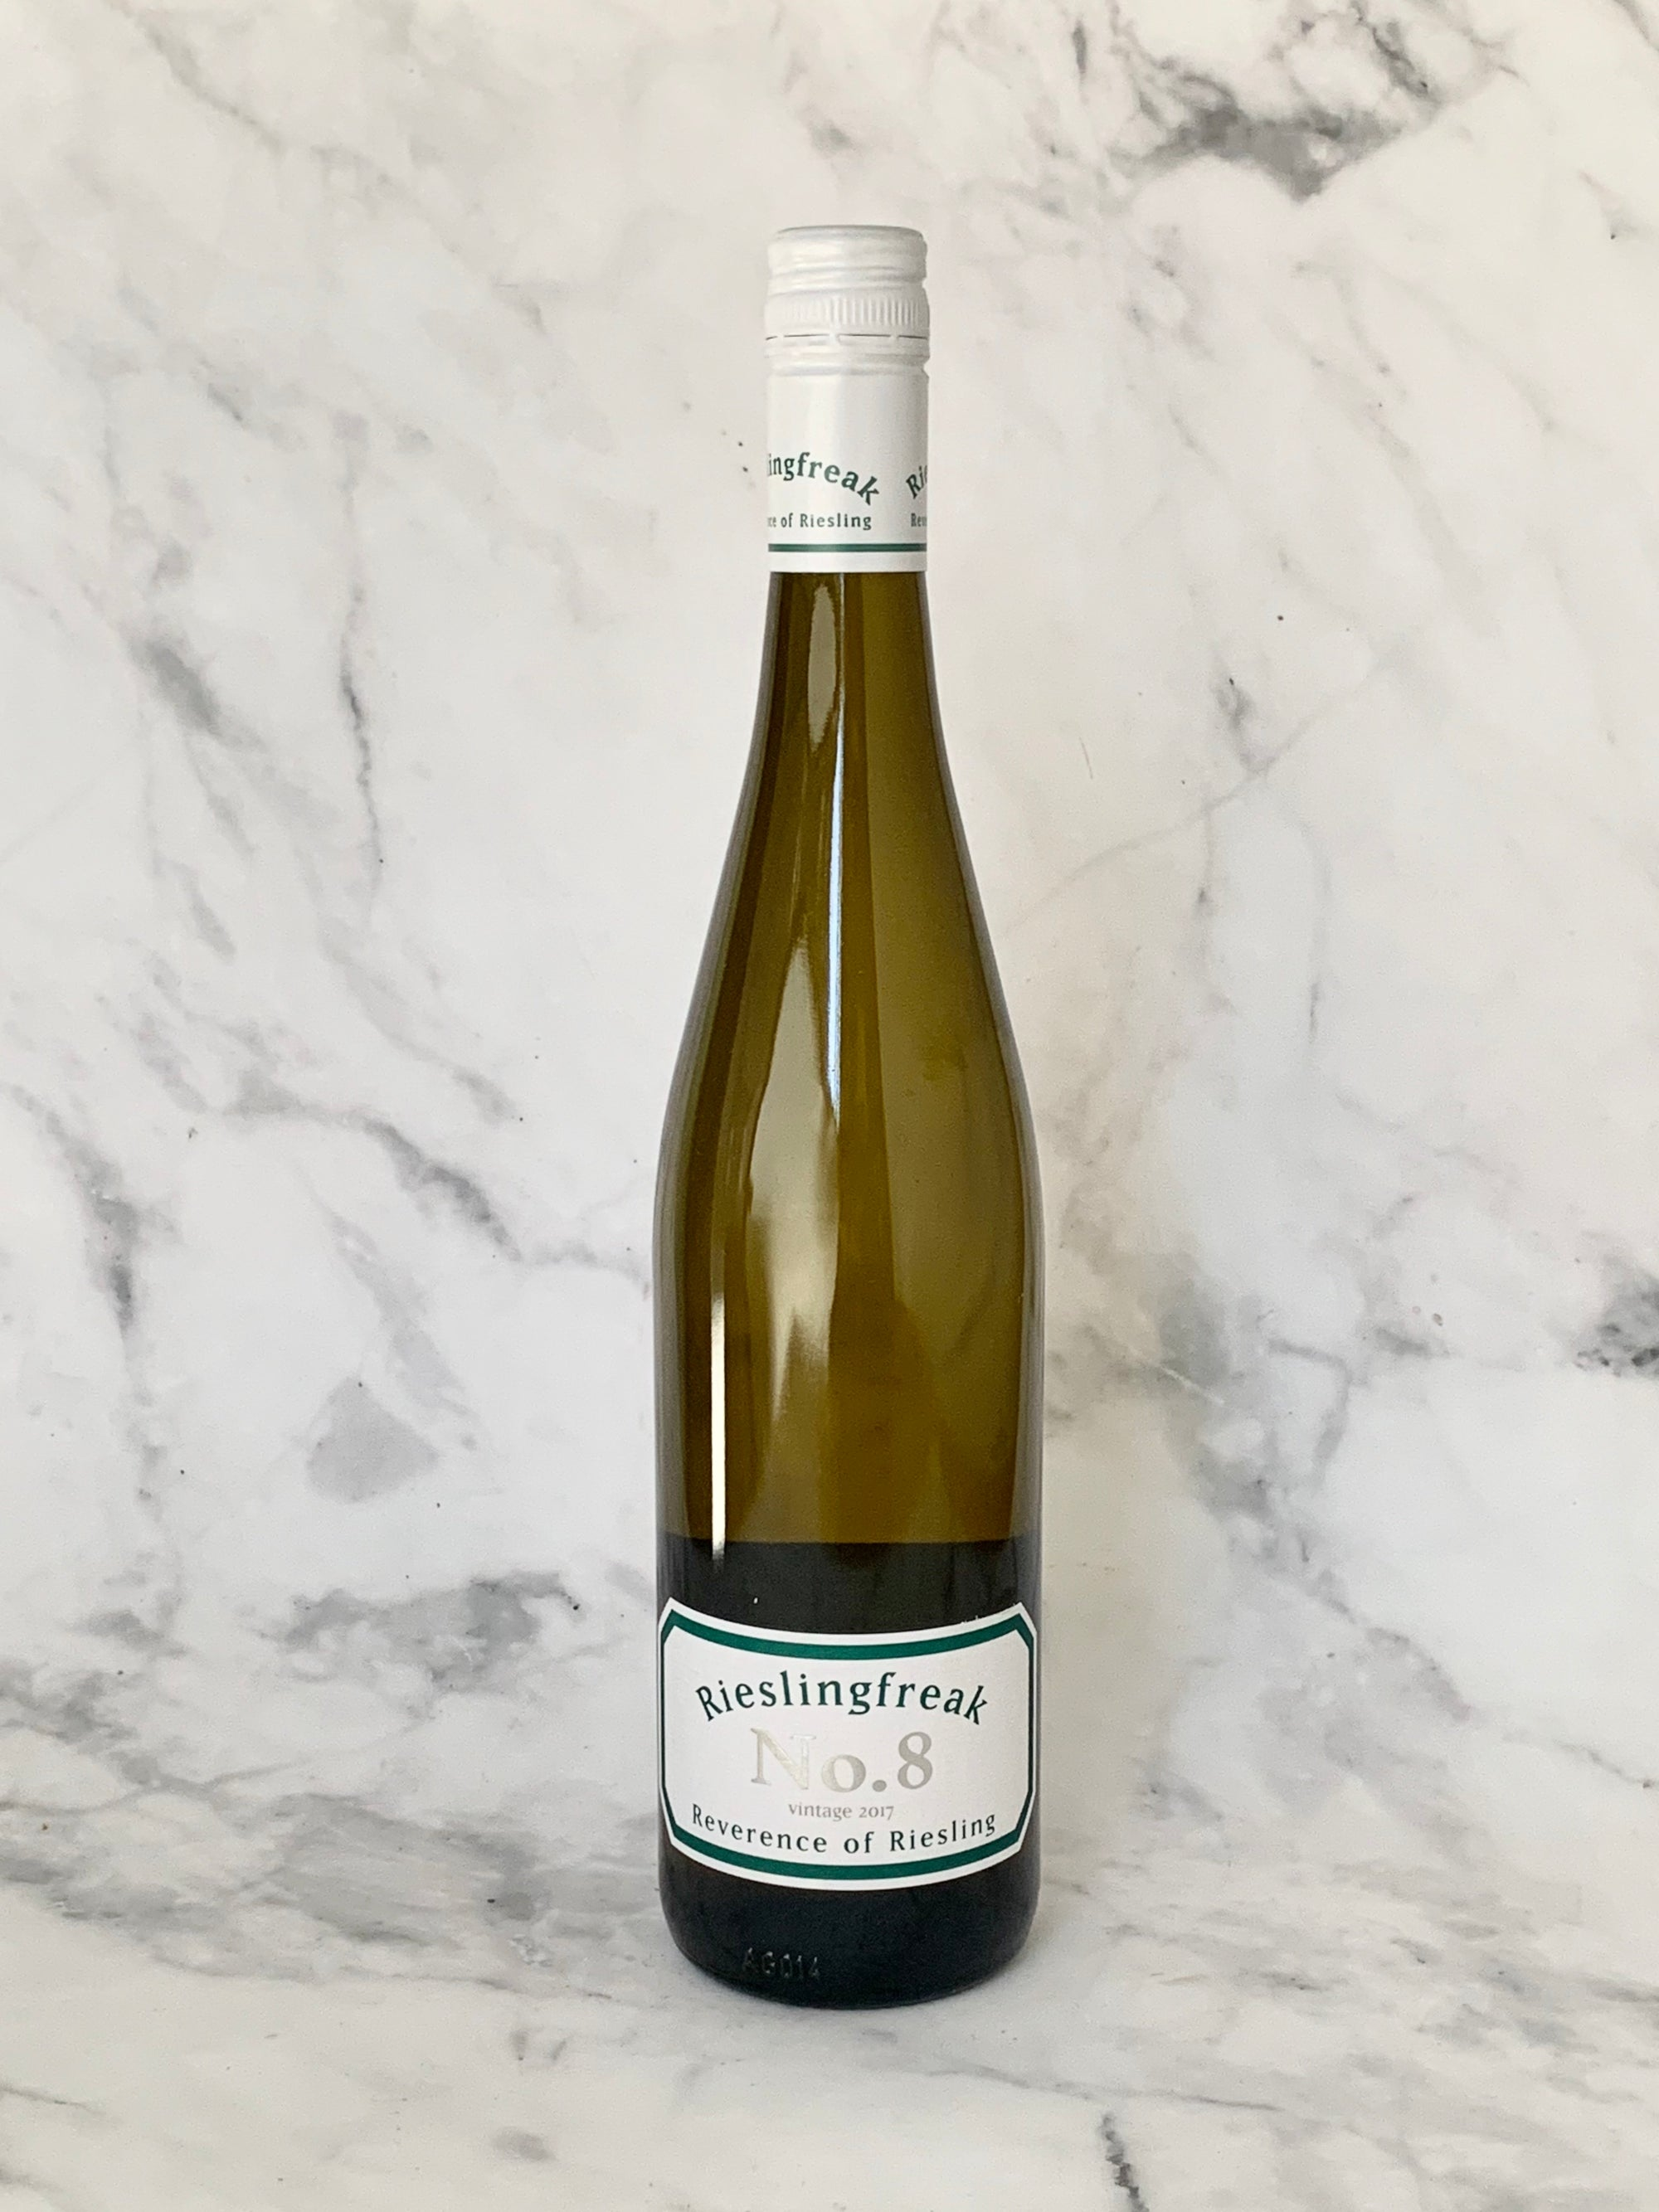 Rieslingfreak No.8